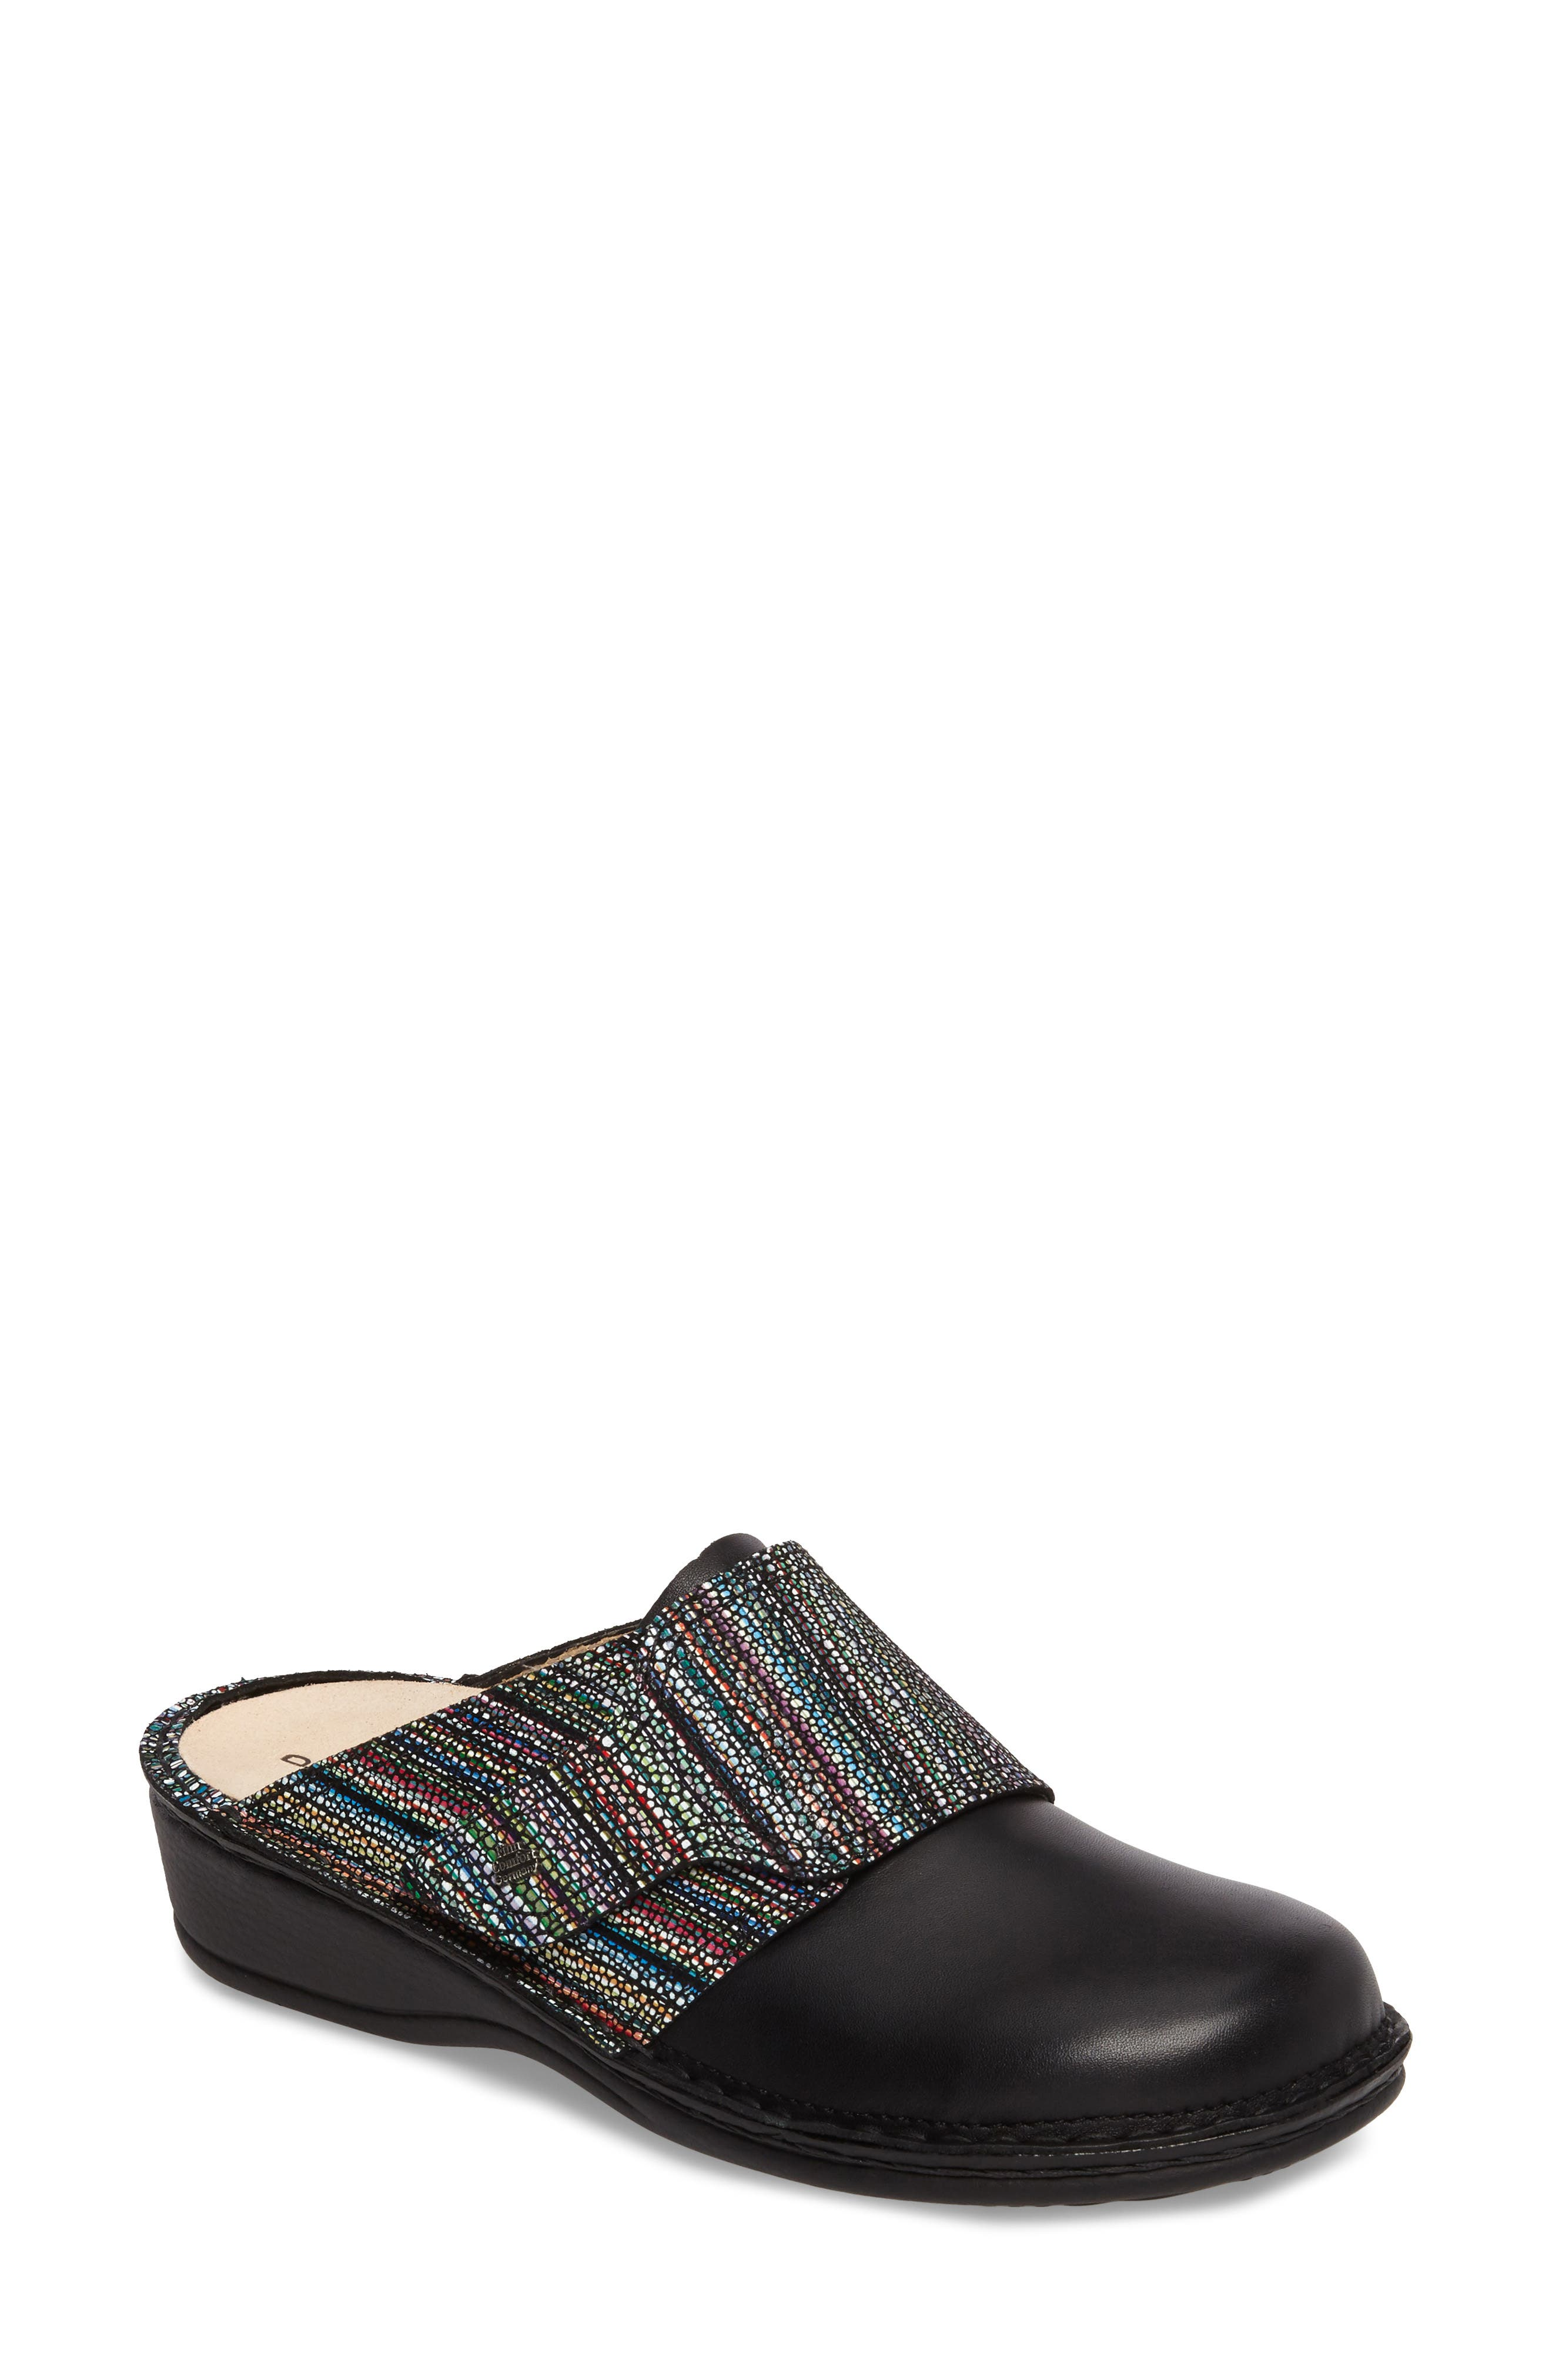 Aussee Clog,                             Main thumbnail 1, color,                             BLACK LEATHER